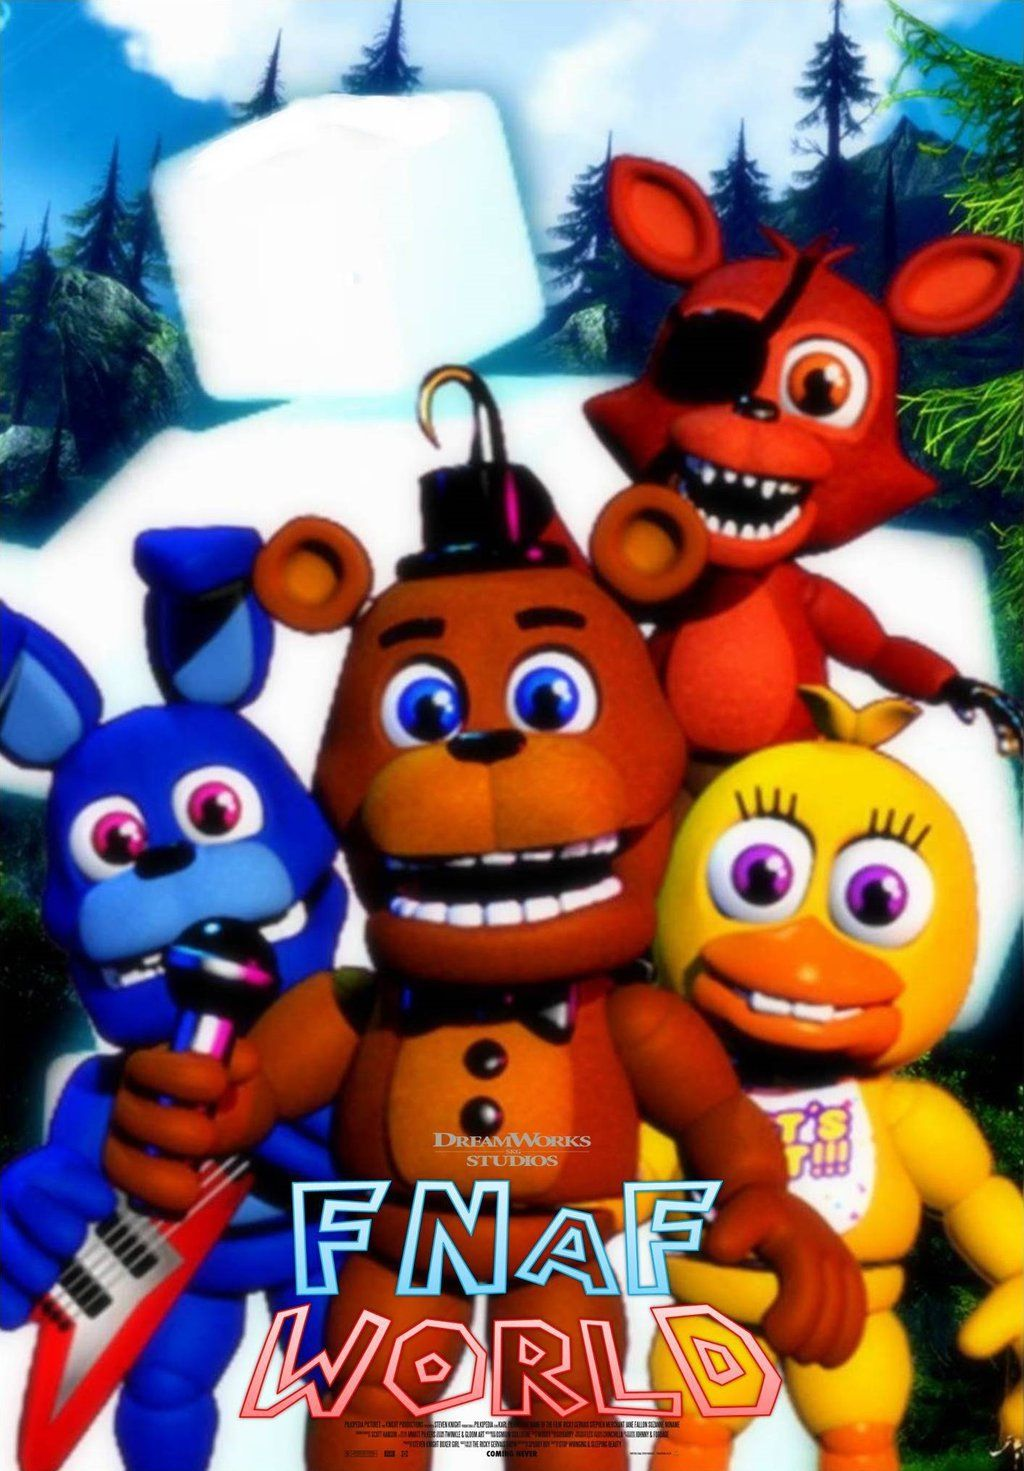 Scott Cawthon Thank You Poster - Year of Clean Water